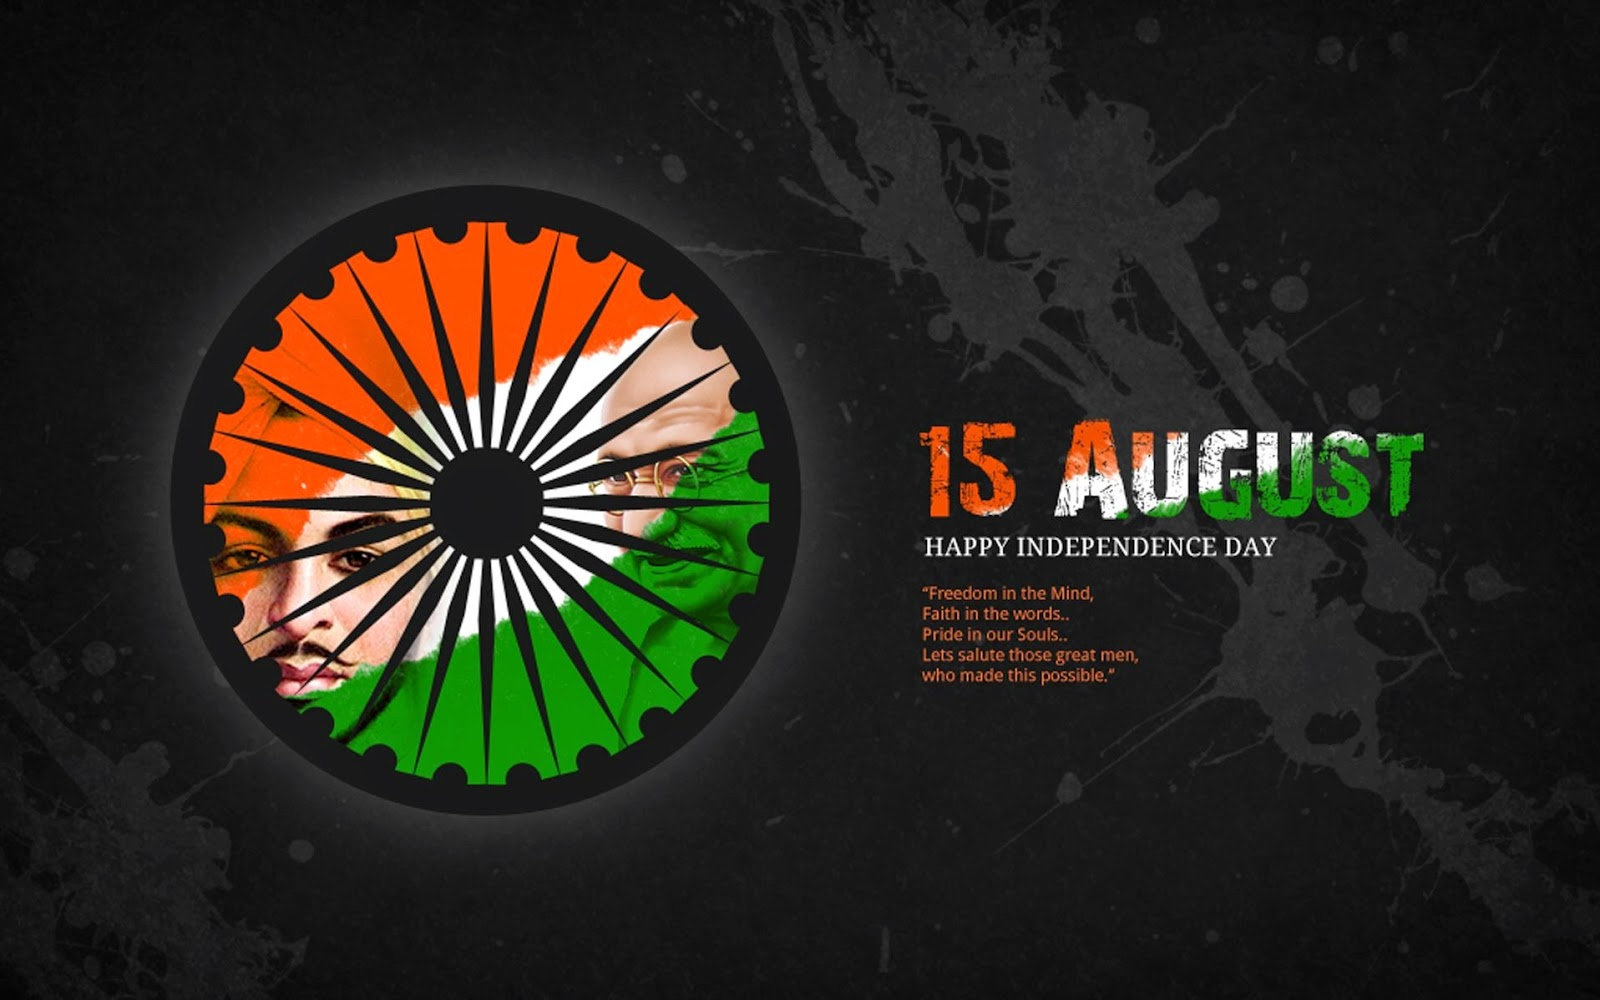 Happy Independence Day India messages images